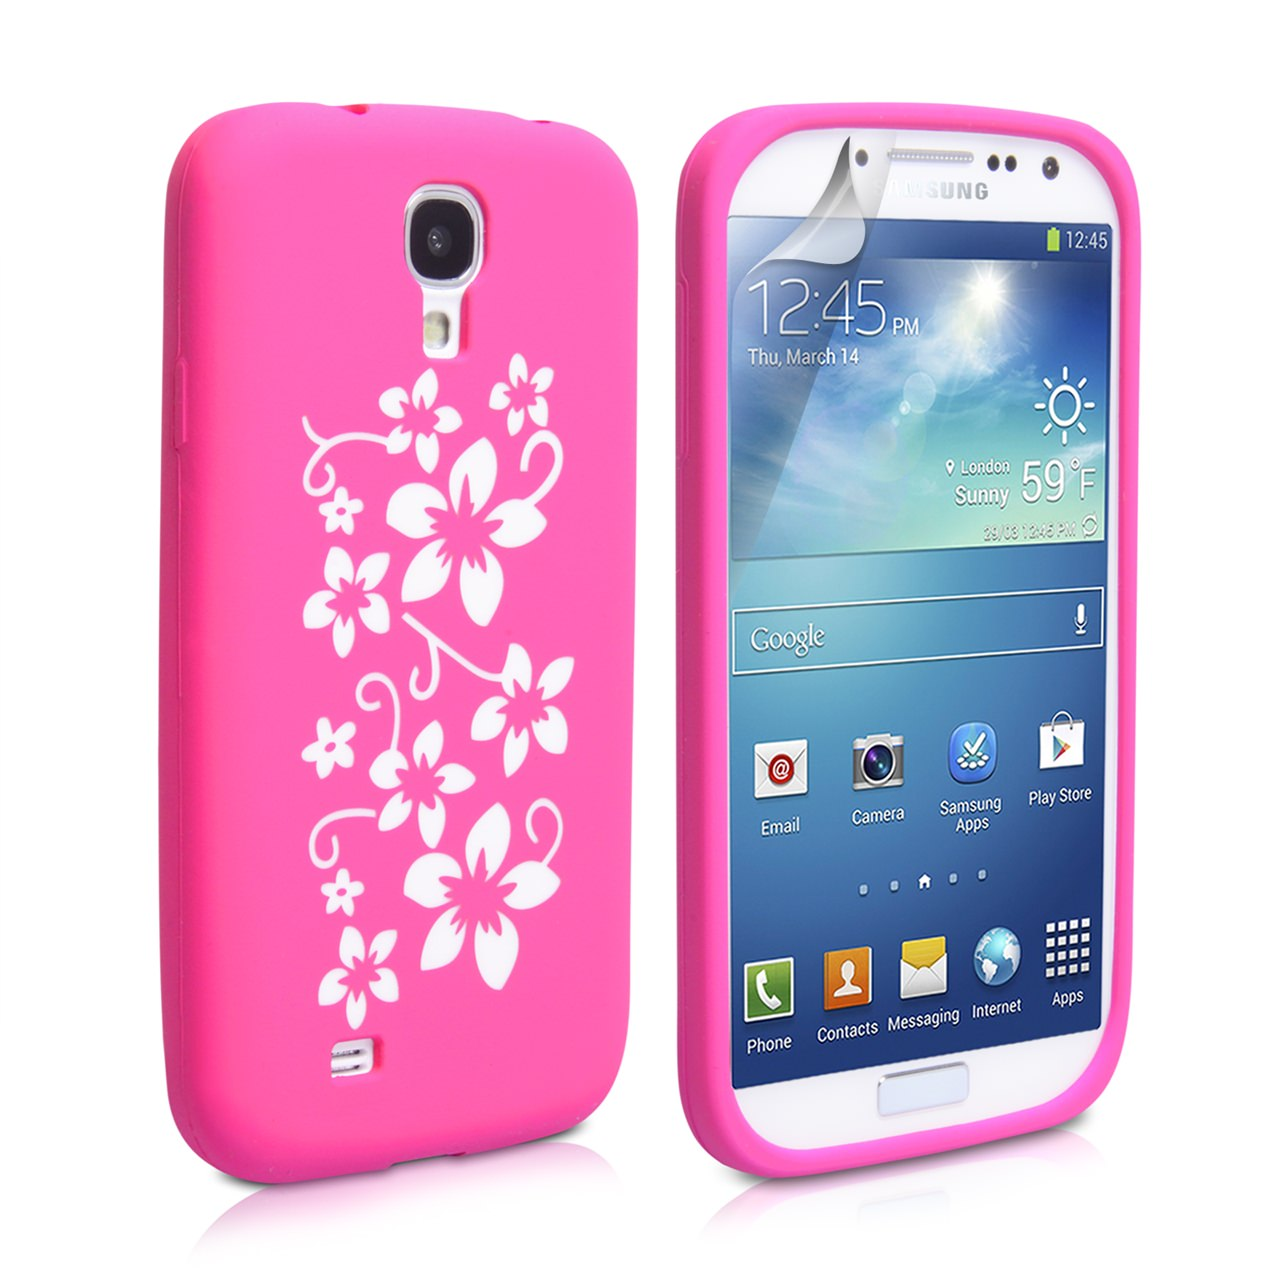 YouSave Accessories Samsung Galaxy S4 Floral Gel Case - Hot Pink